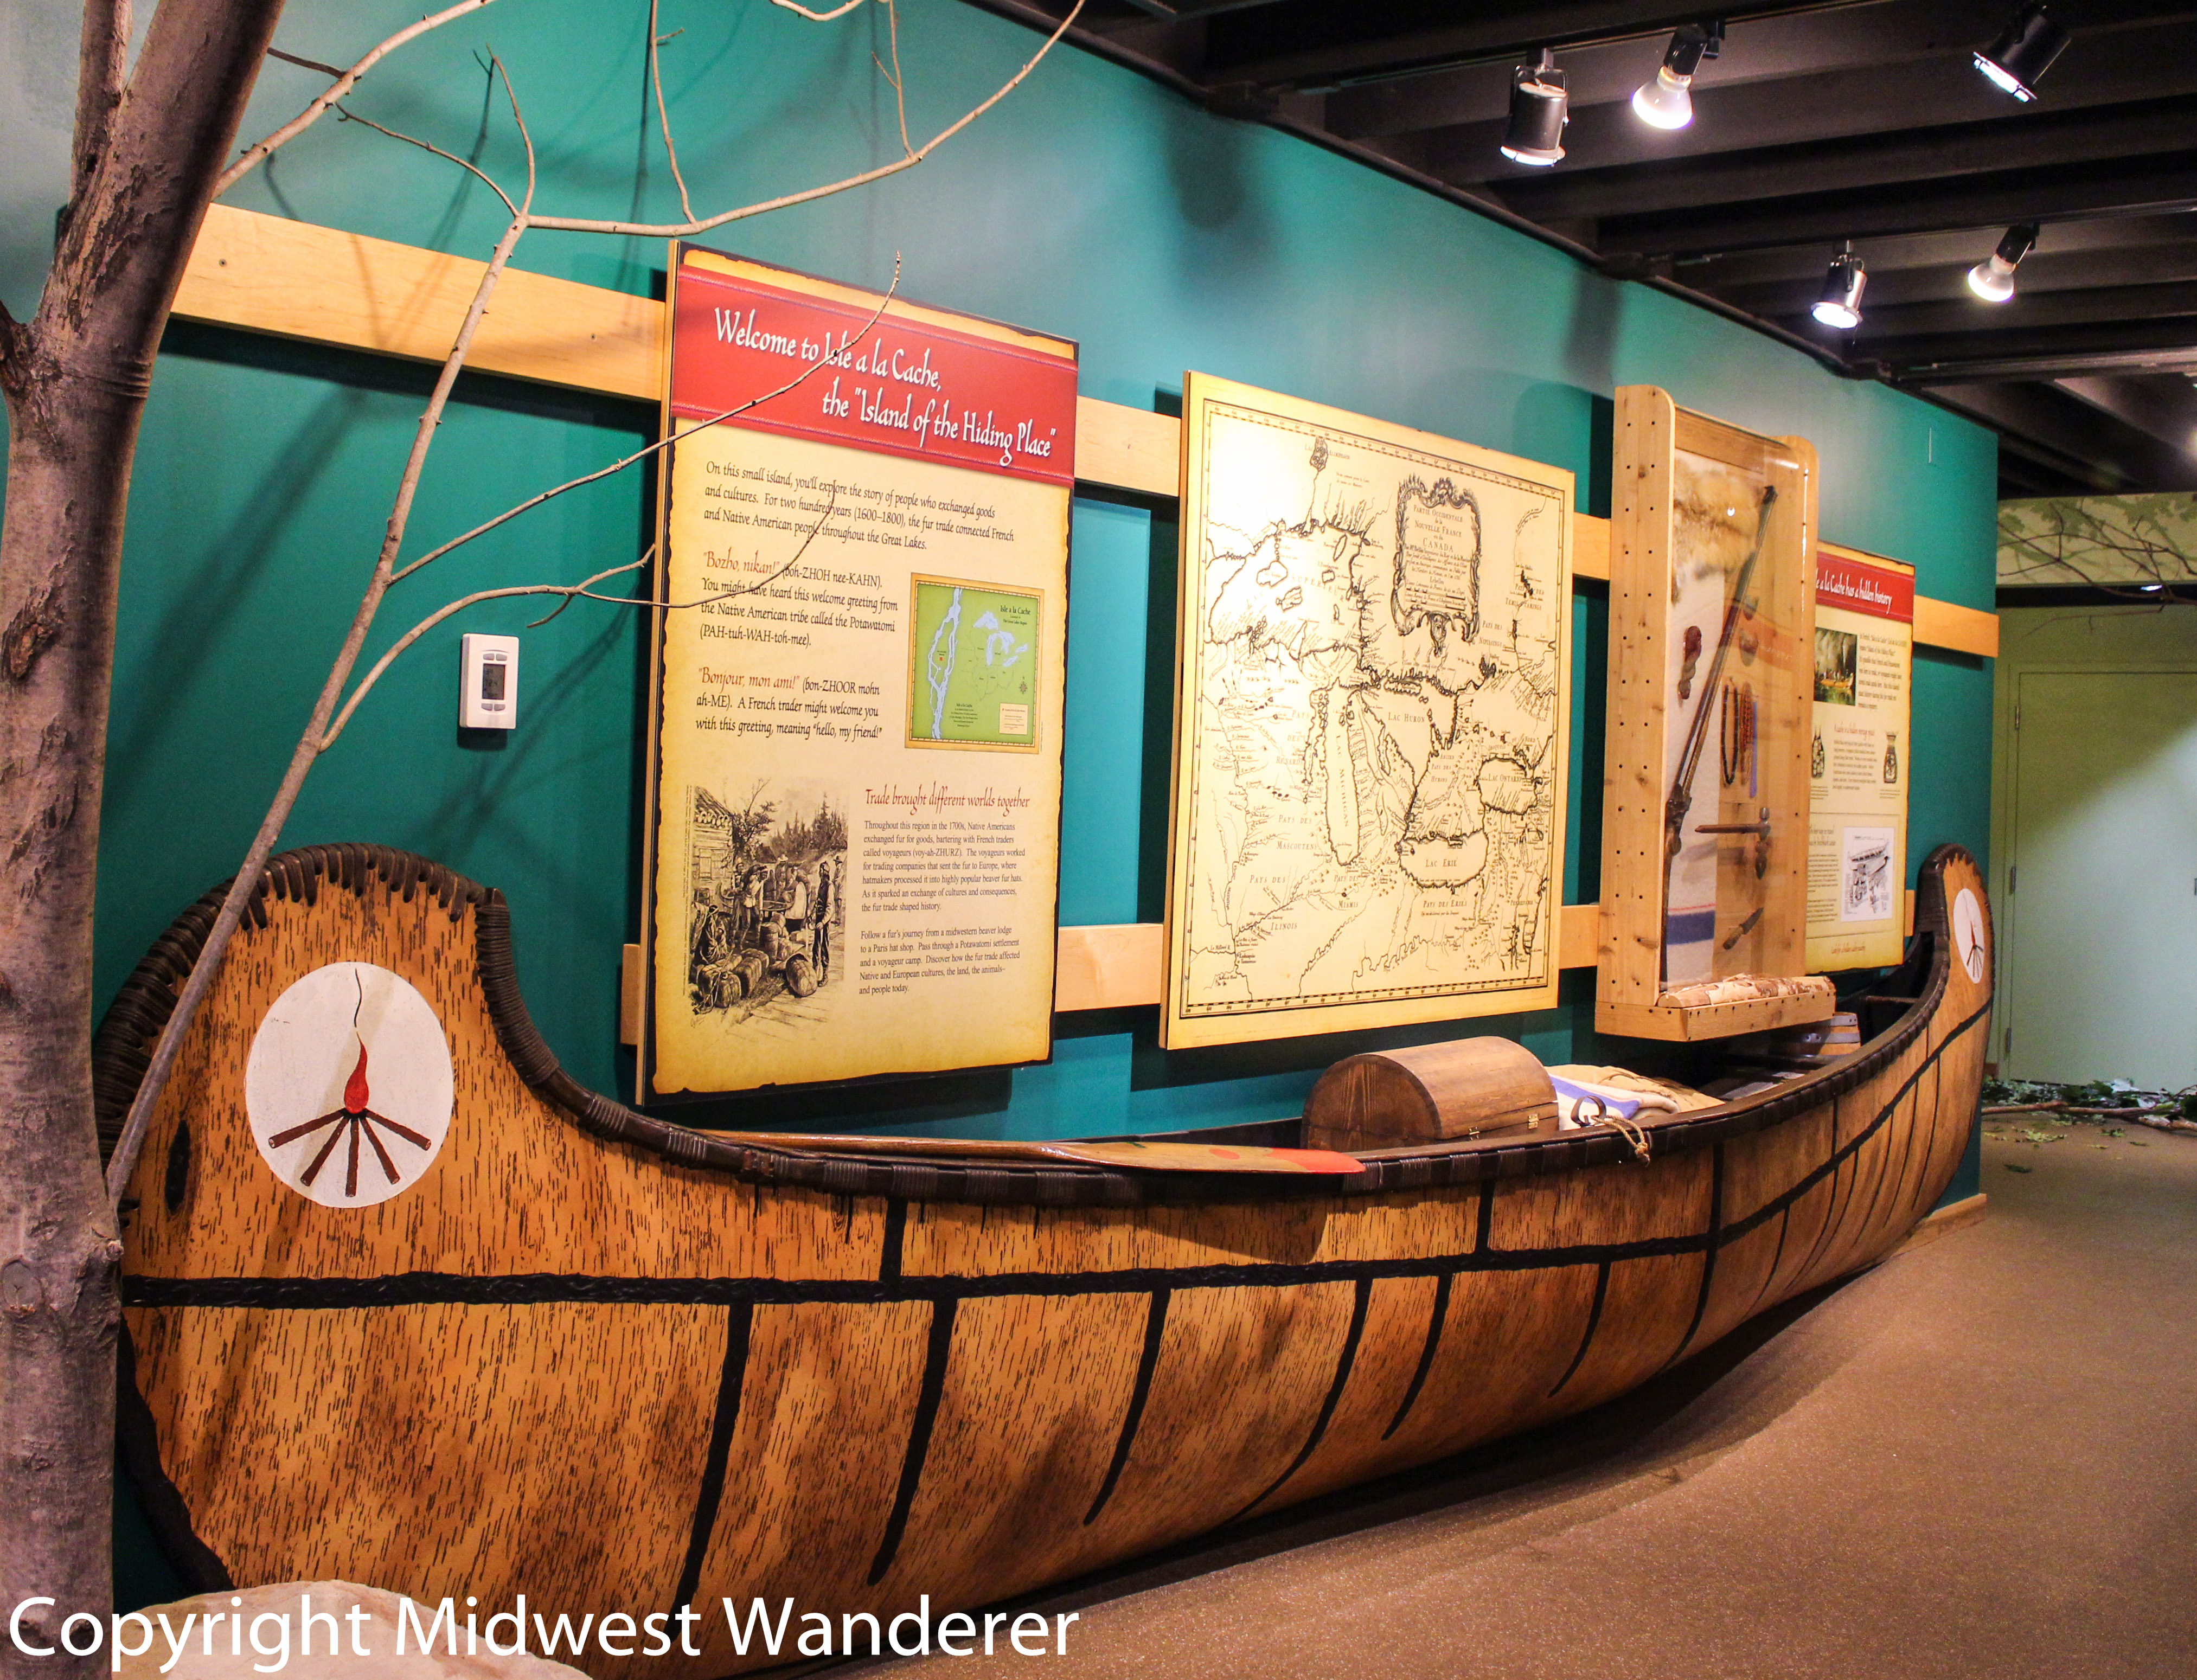 Isle a la Cache Museum: Discover the Fur Trade on the Island of the Hiding Place